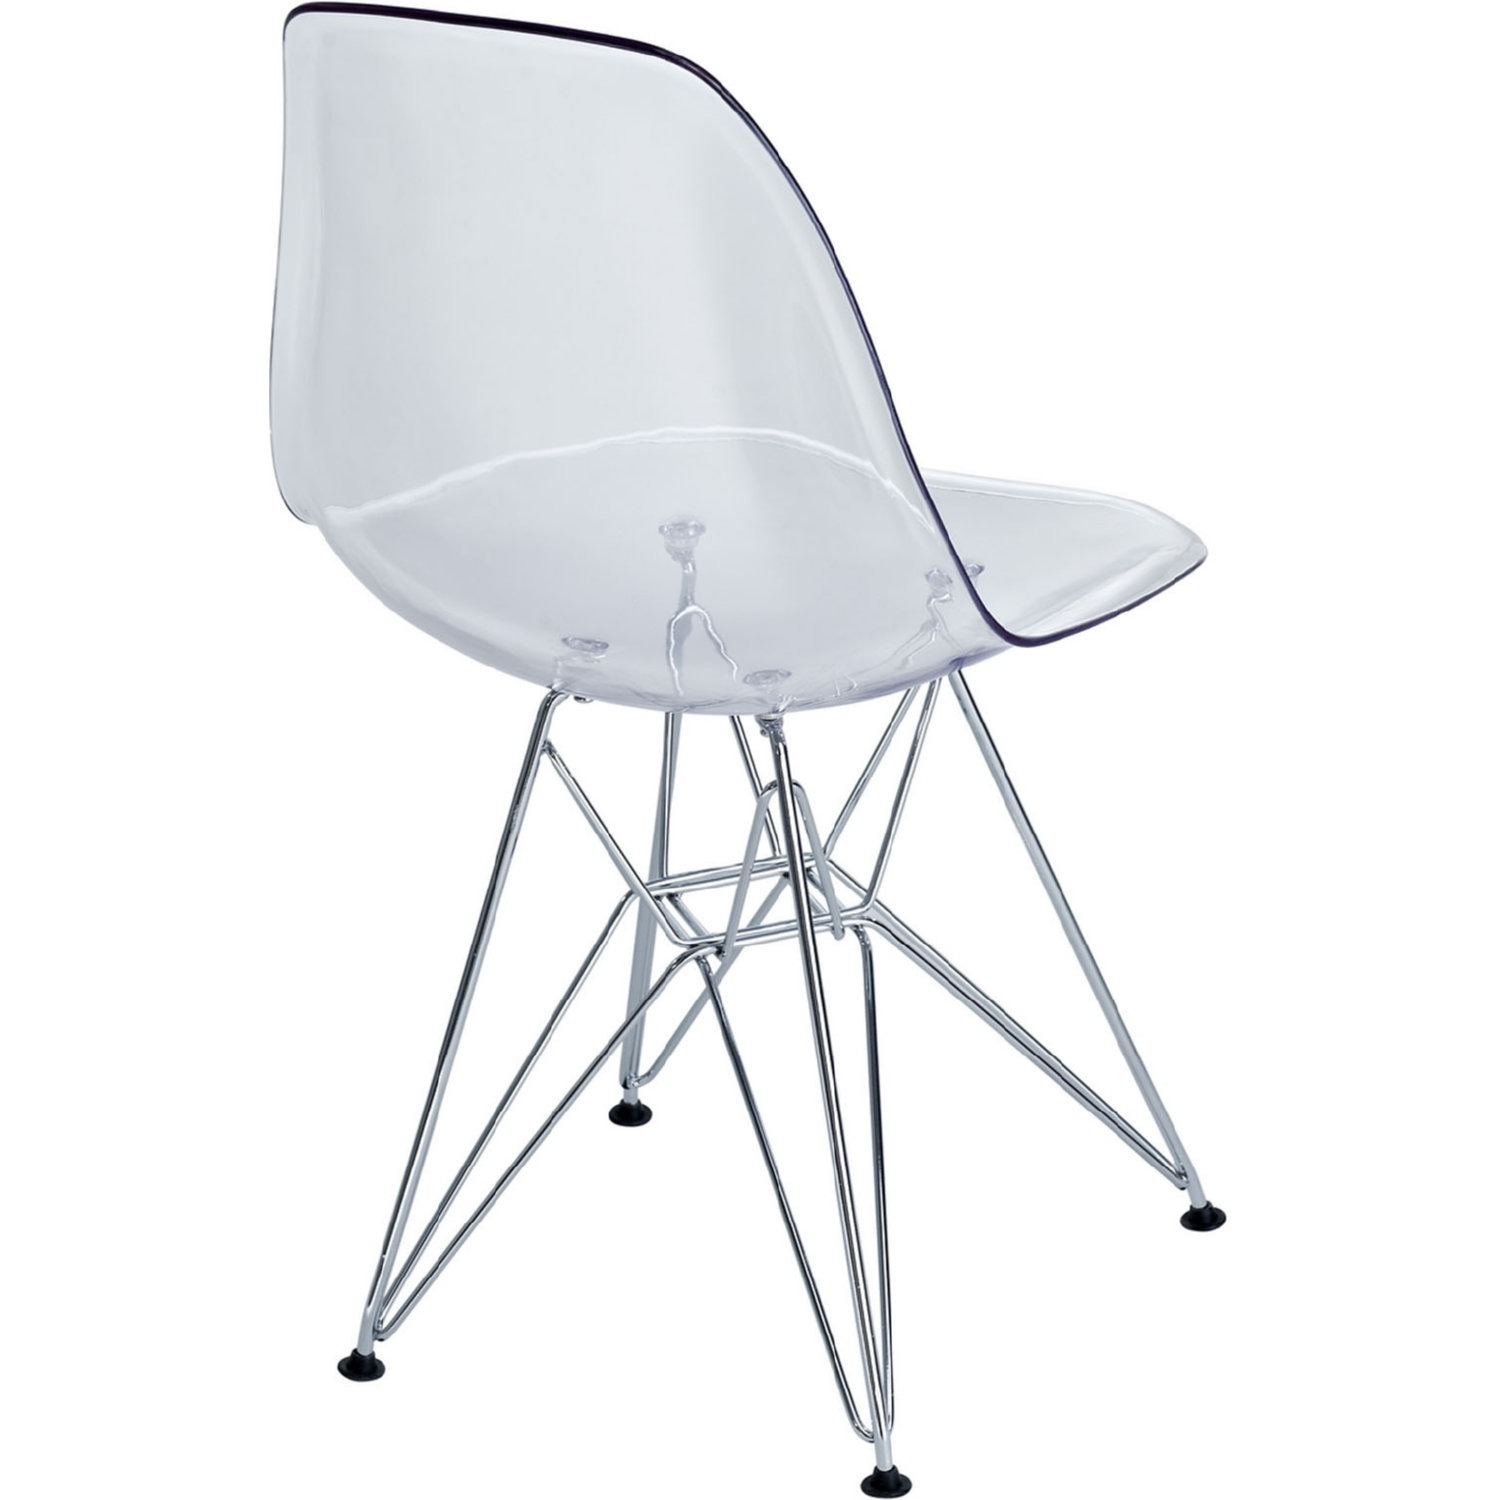 Modern Dining Chair In Clear Finish W/ Wire Legs - image-2